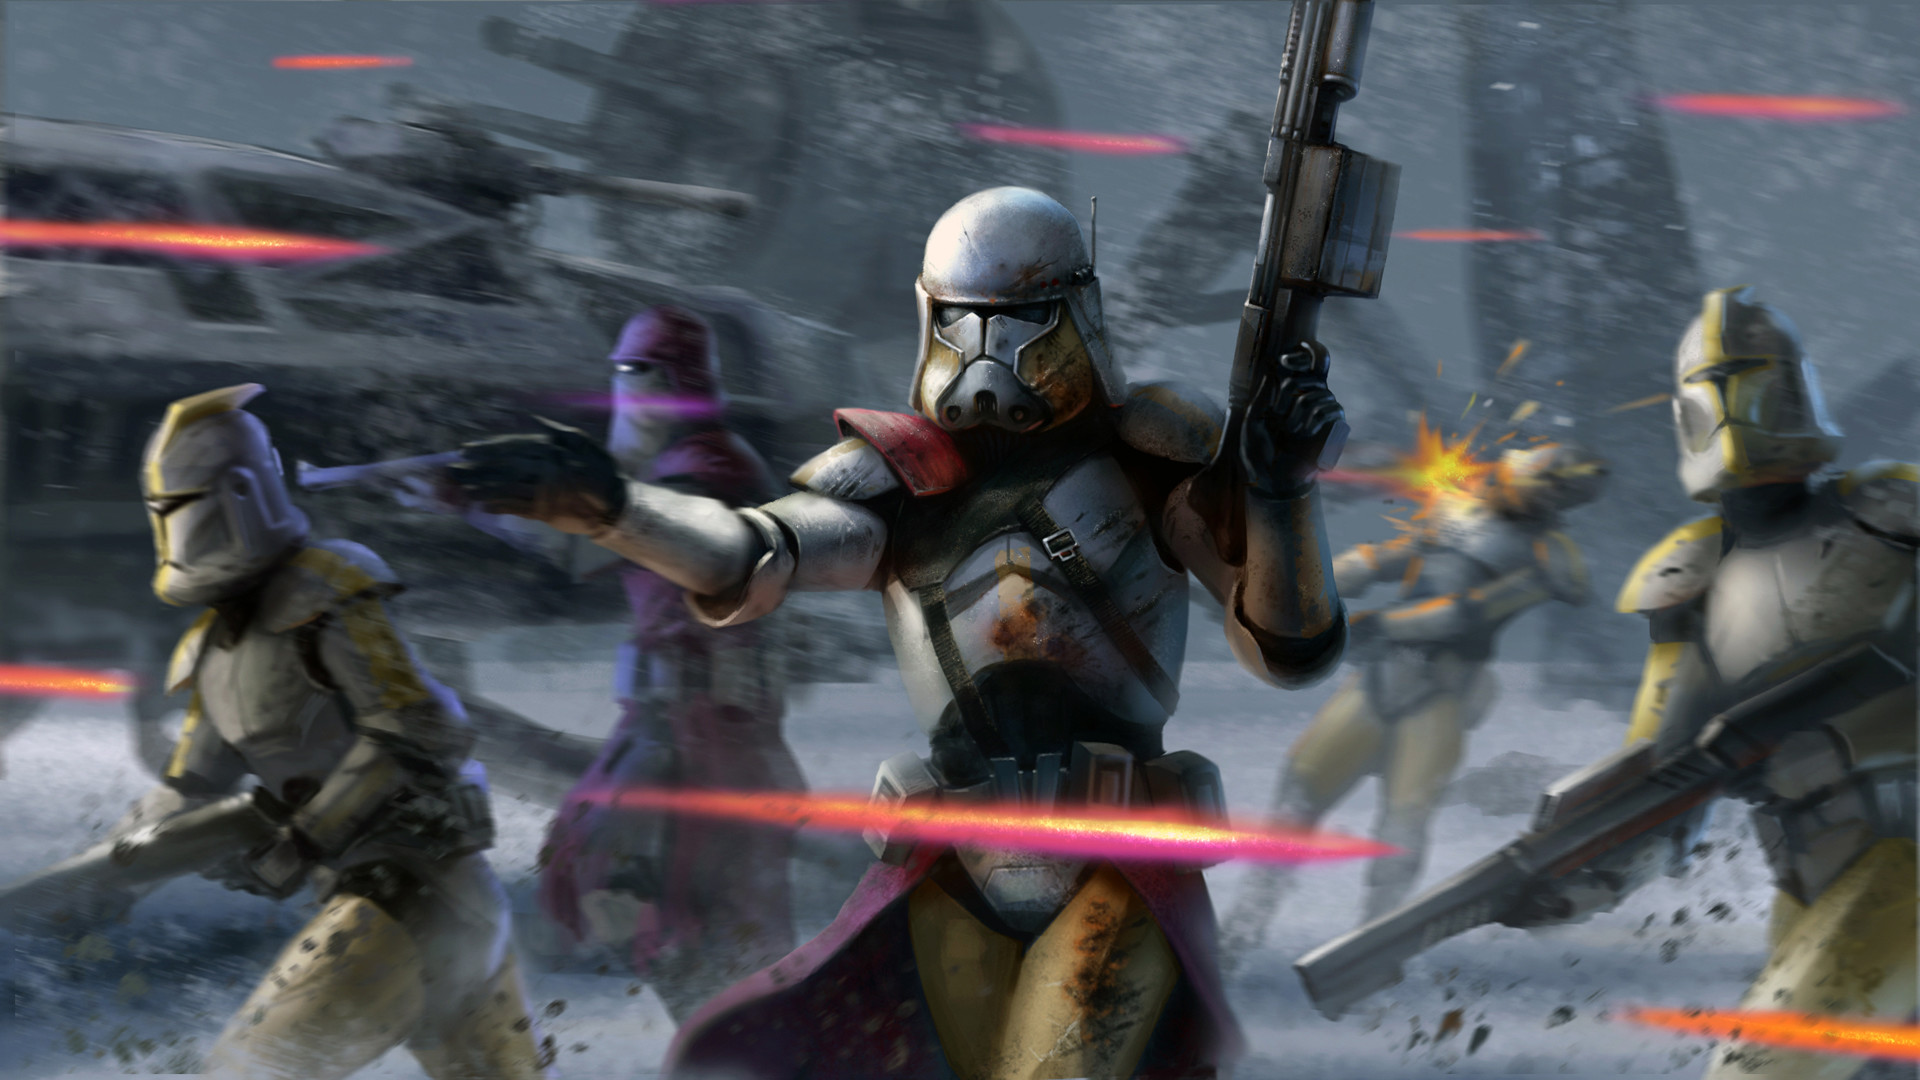 My Free Wallpapers Star Wars Wallpapers Jango Fett And The Clones